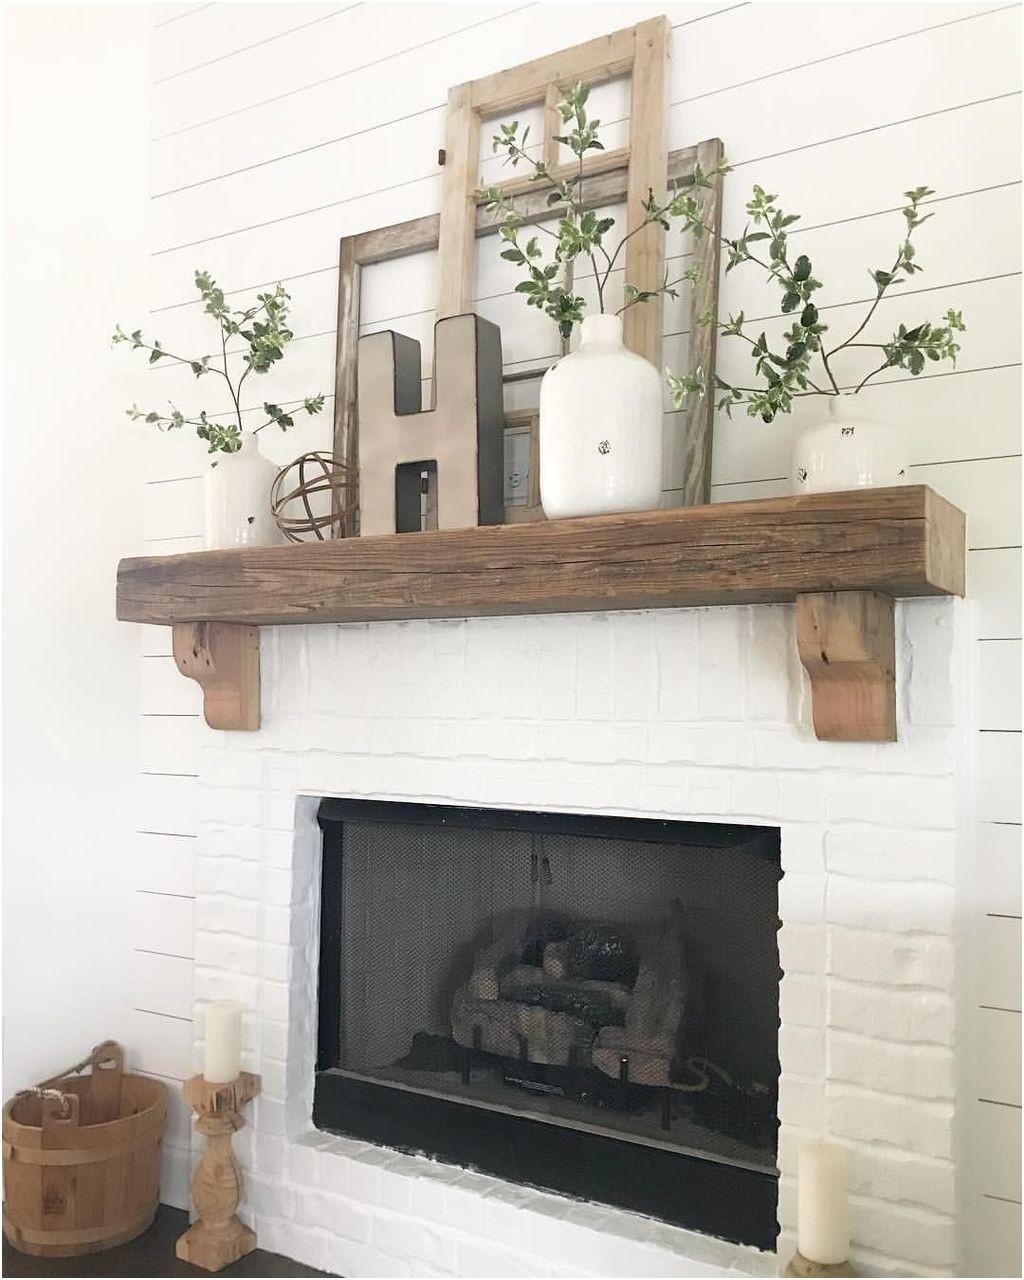 Decorating Ideas for the Fireplace Mantel Awesome 39 Cozy Fireplace Decor Ideas for White Walls